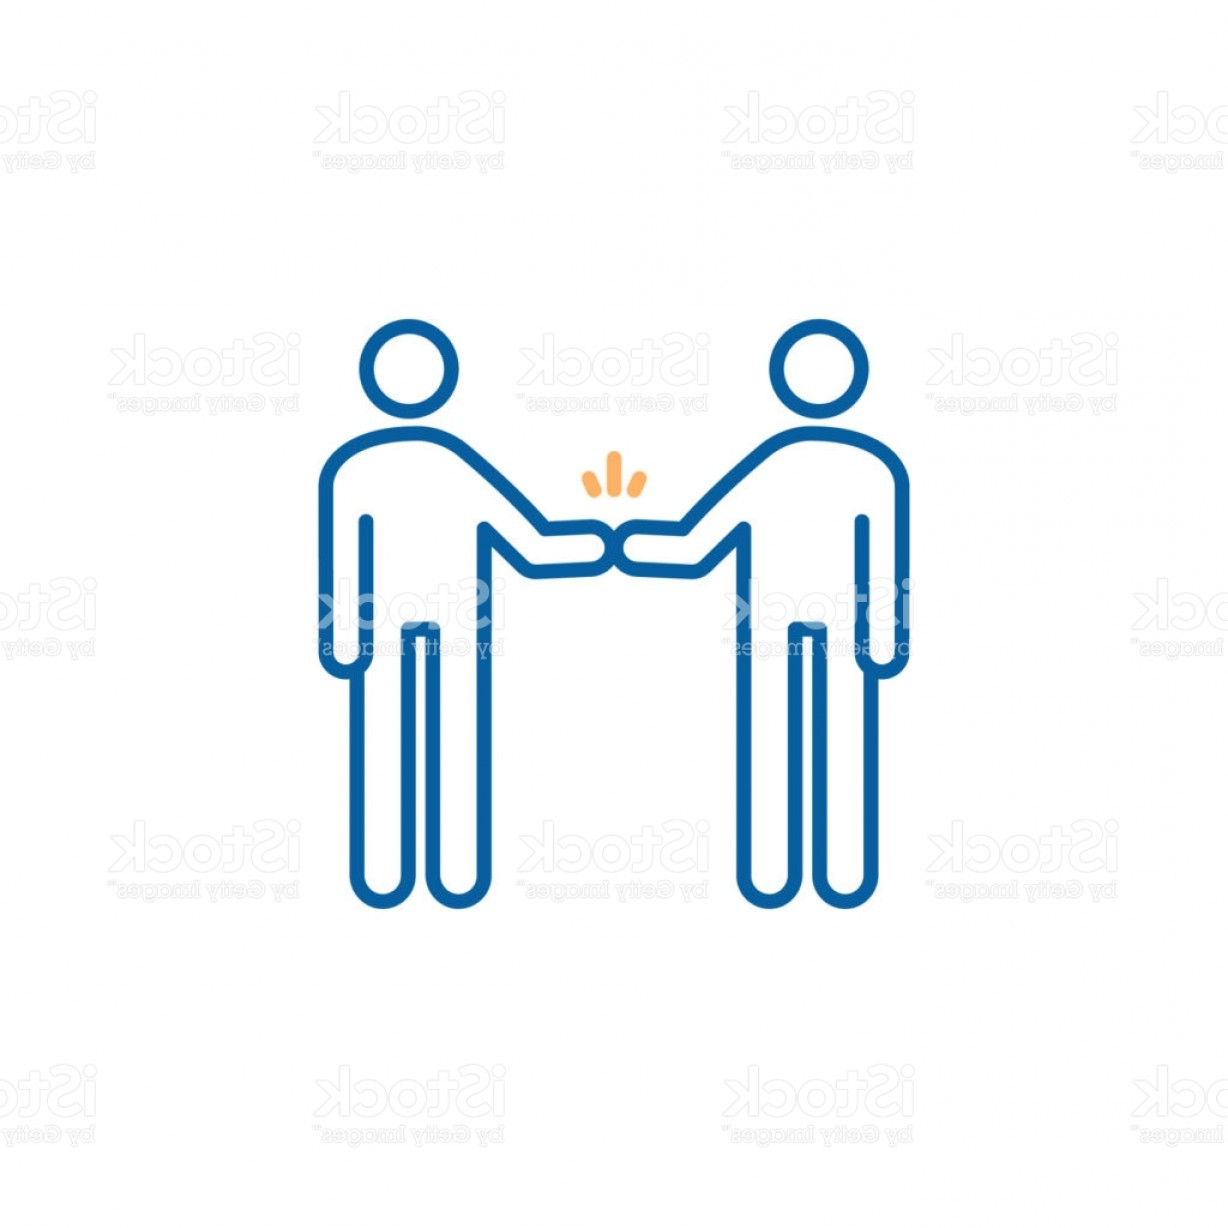 Emoji Fist Bump Vector Graphic: Characters Shaking Hand Fist Bump Vector Trendy Thin Line Icon Illustration Design Gm